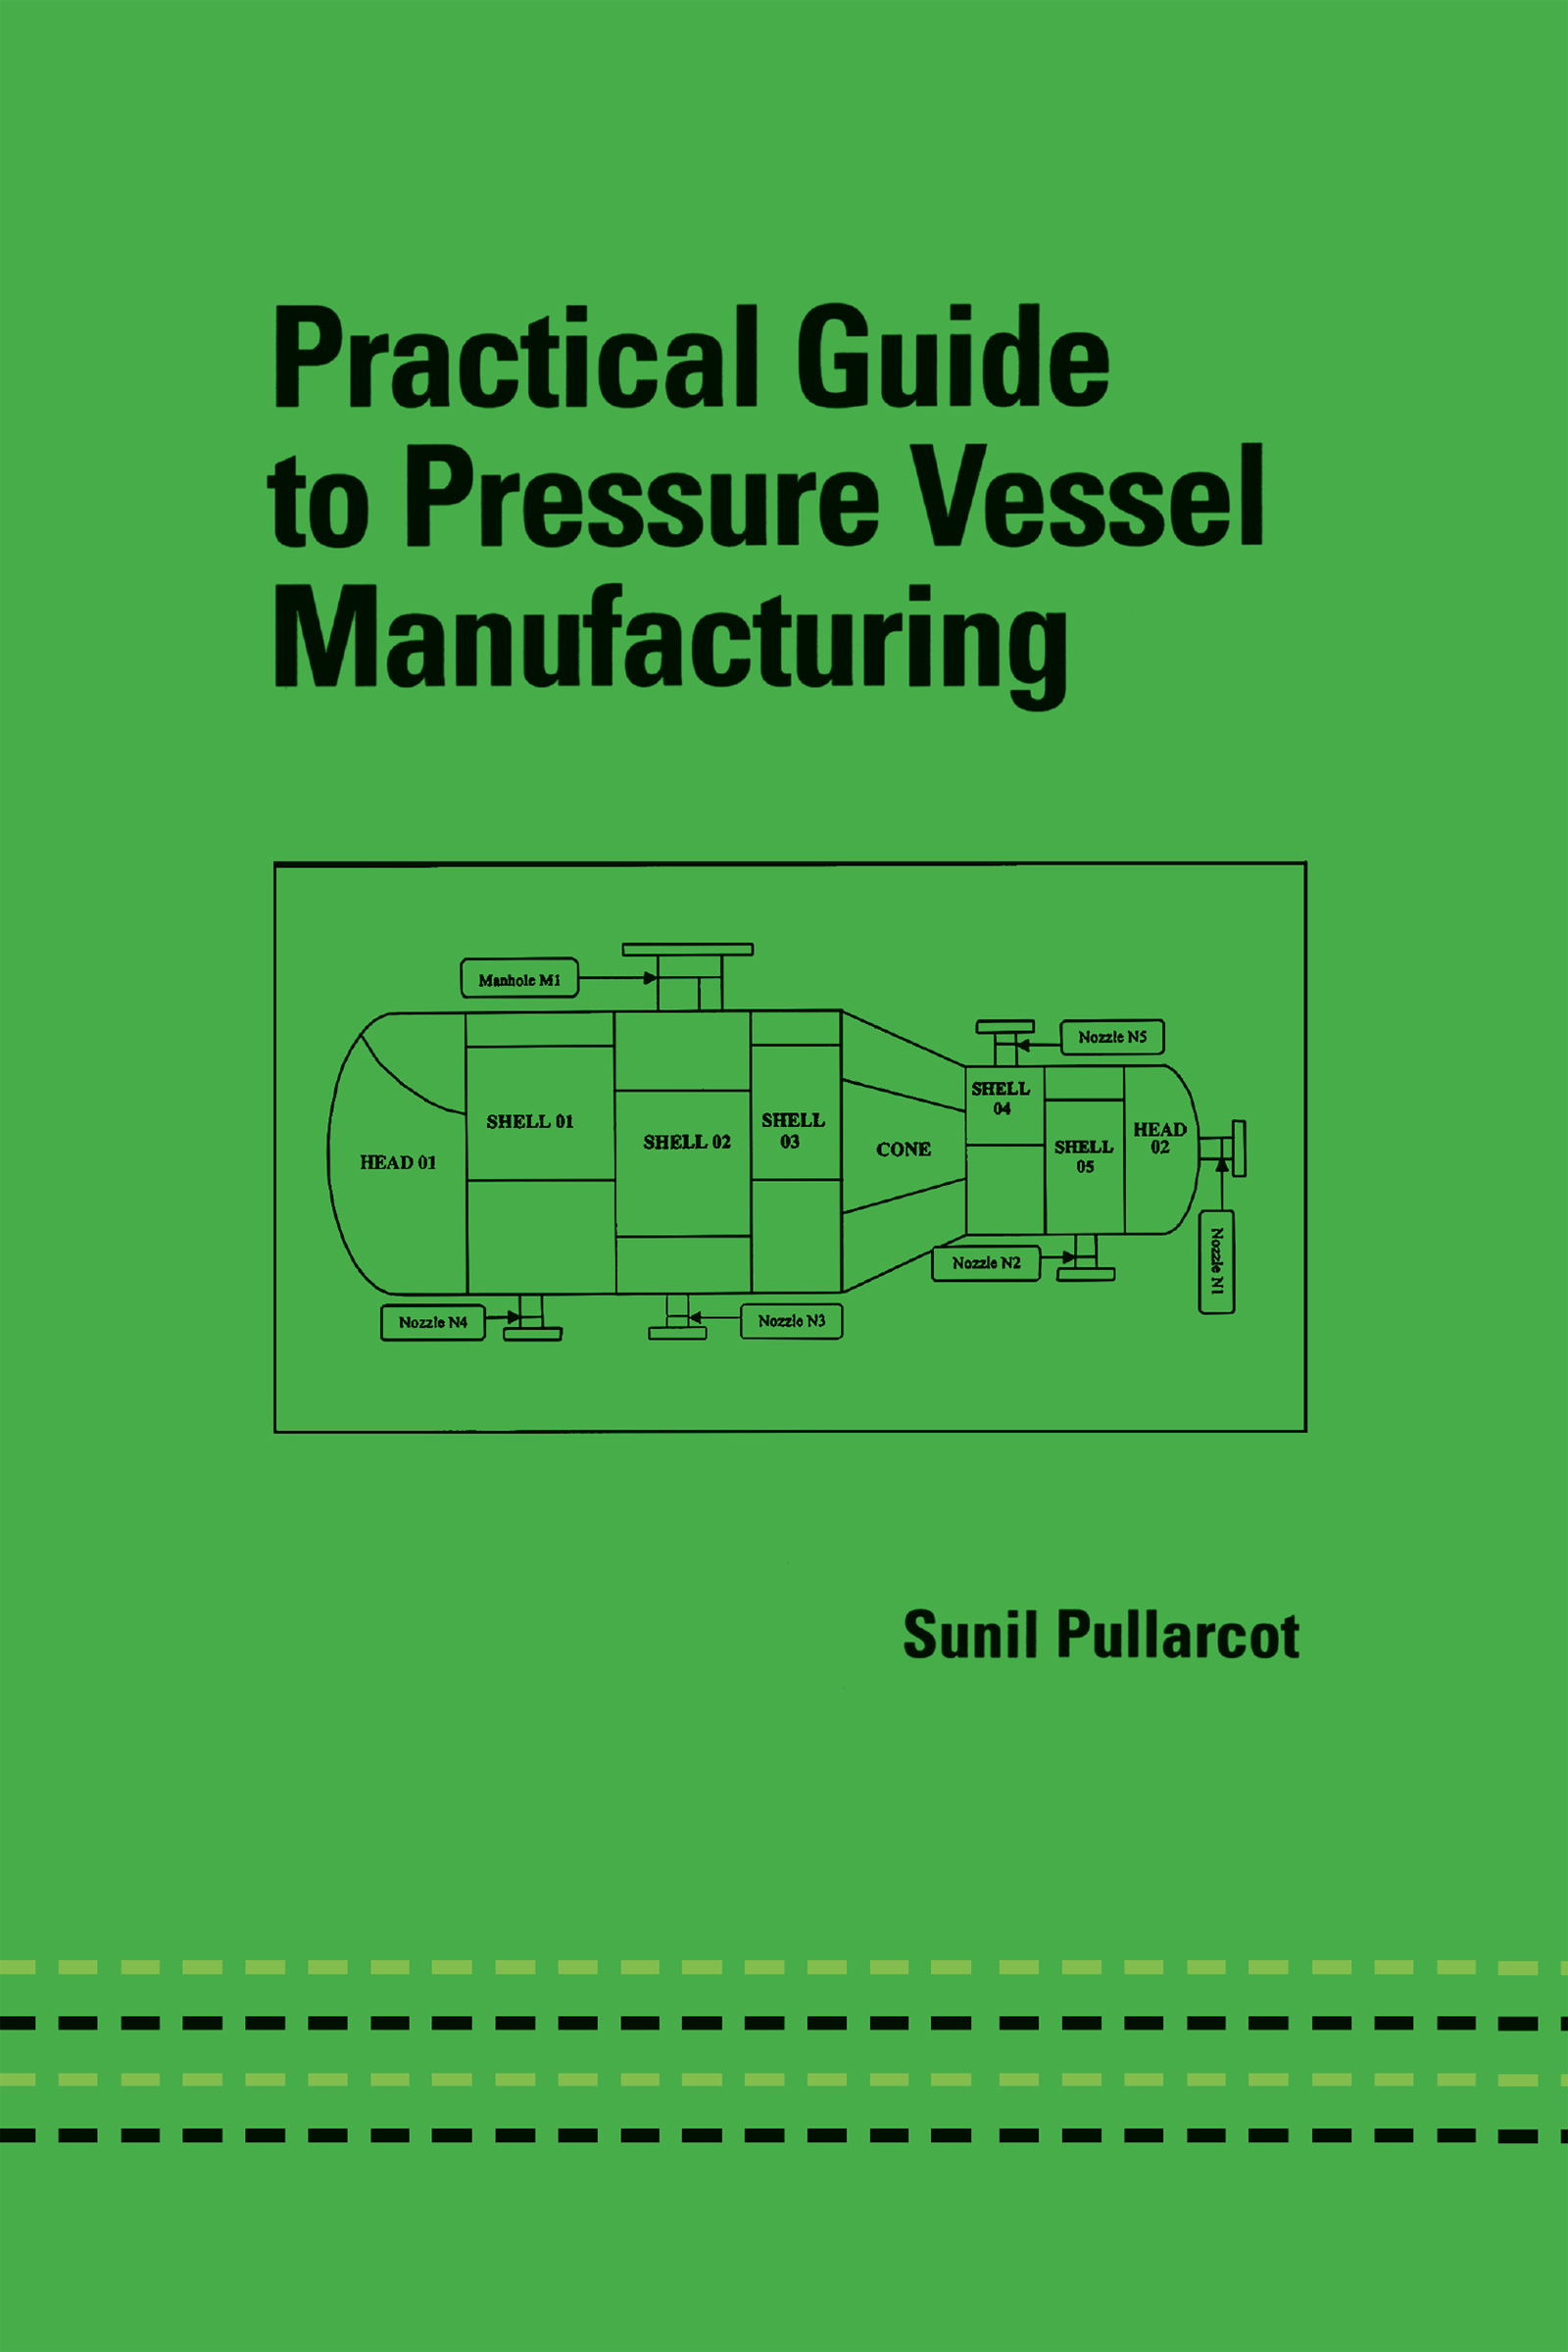 Practical Guide to Pressure Vessel Manufacturing